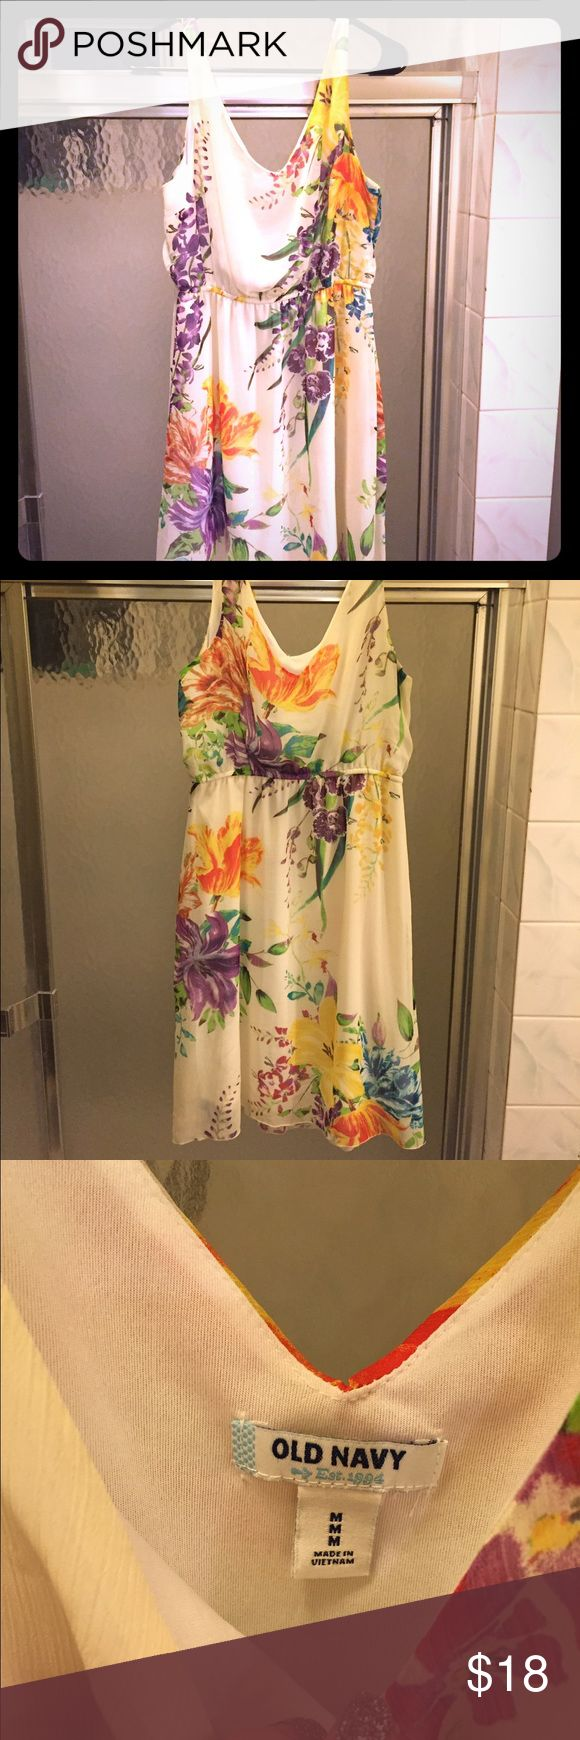 Cream and Floral Old Navy Dress Really beautiful floral pattern dress by Old Navy. Amazing with knee high boots and a denim jacket. In great used condition. V neck and back. Old Navy Dresses Midi